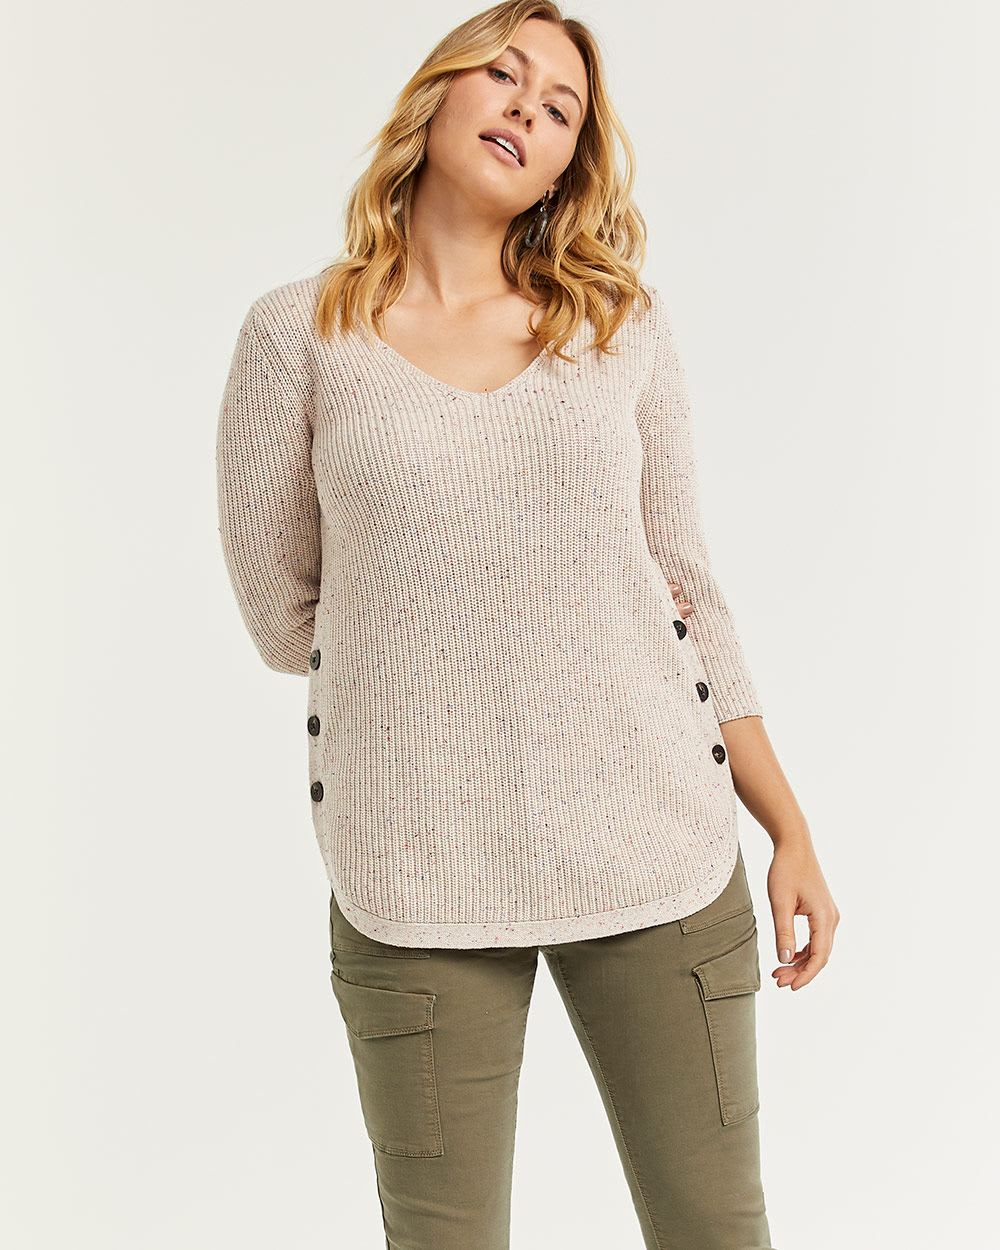 Nep Yarn V-Neck Cotton Sweater